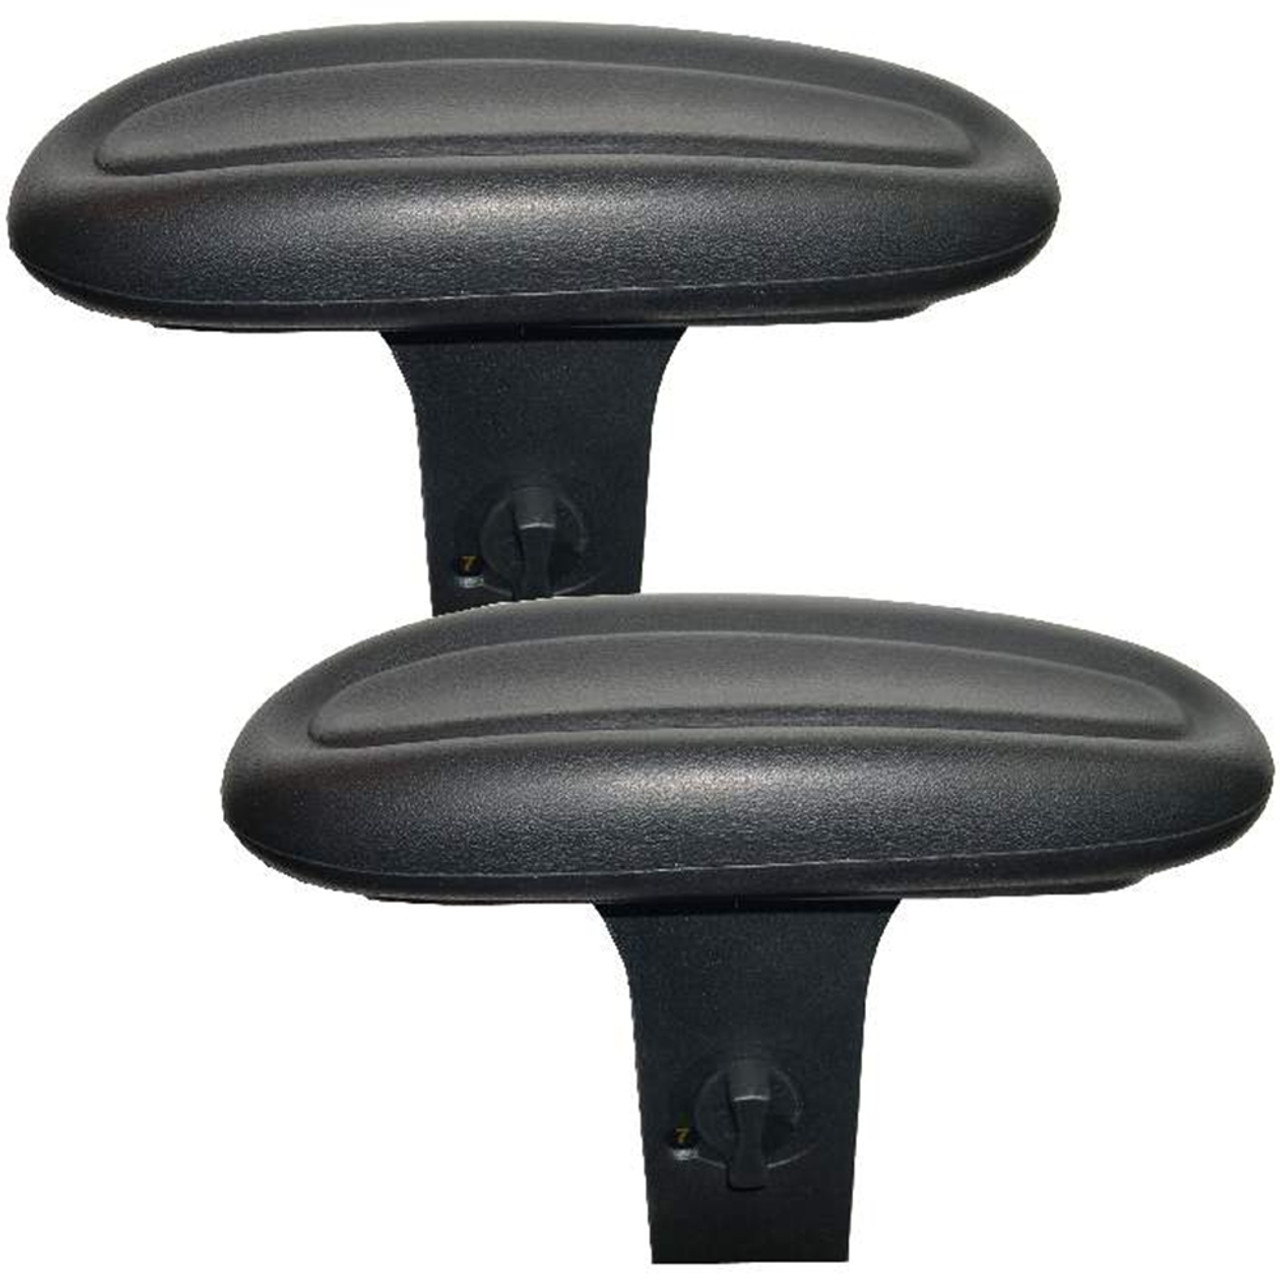 chair bottom pads green universal covers centric office armrests arm installed on typical posts